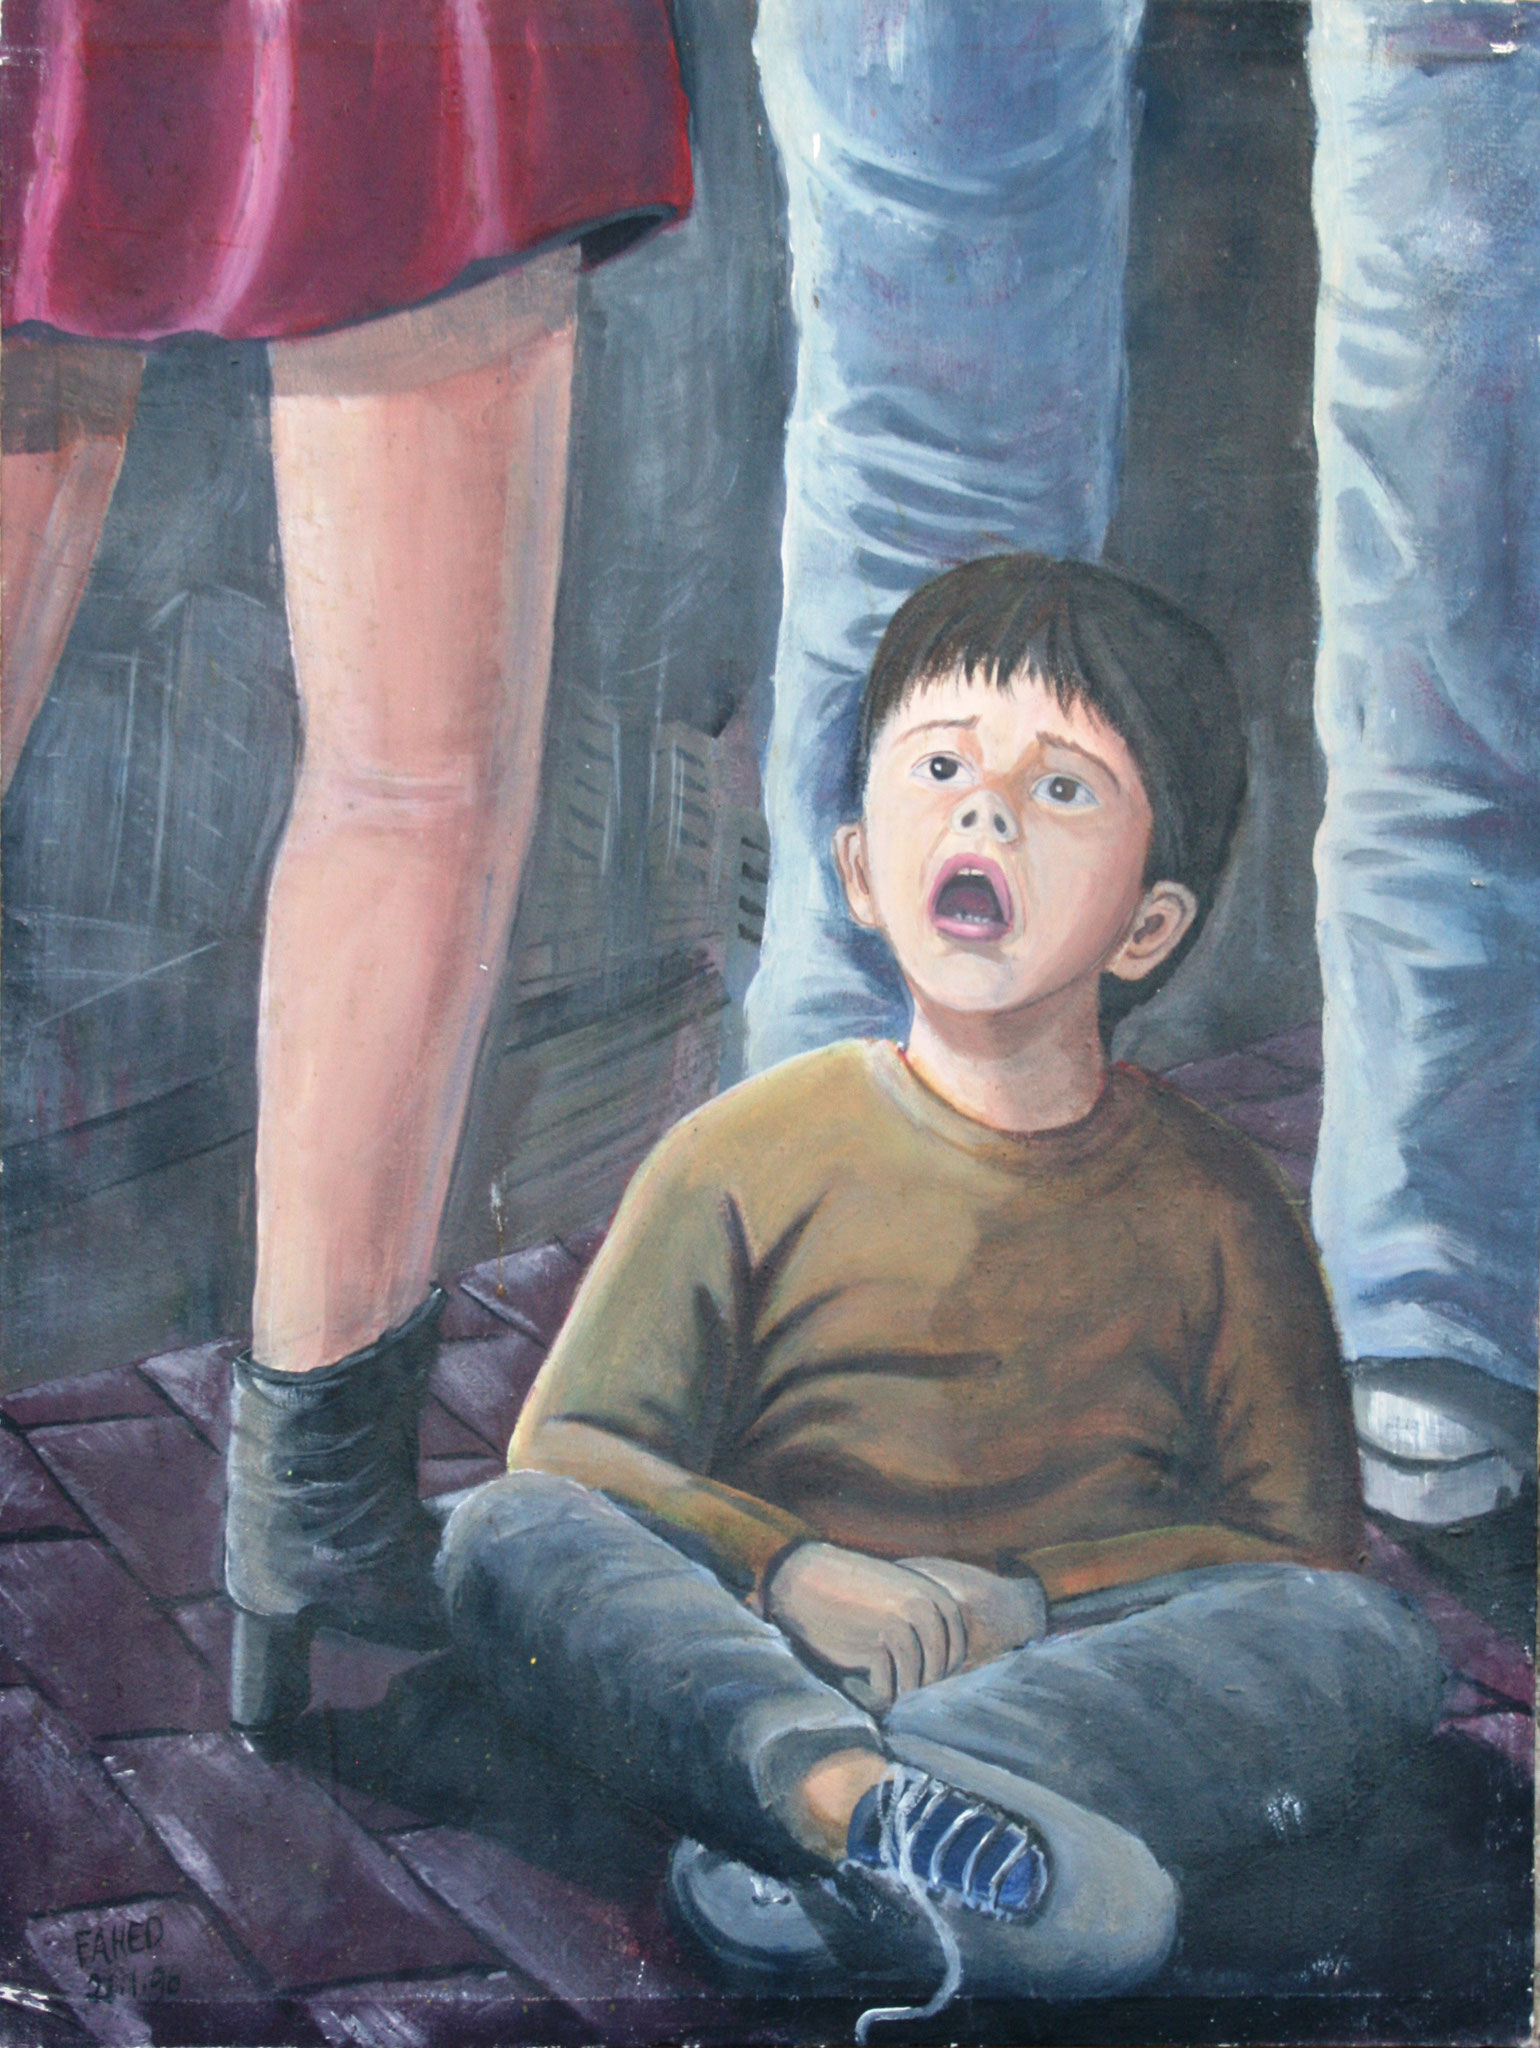 Untitled, Acrylic on canvas, 40 x 60 cm, 1997